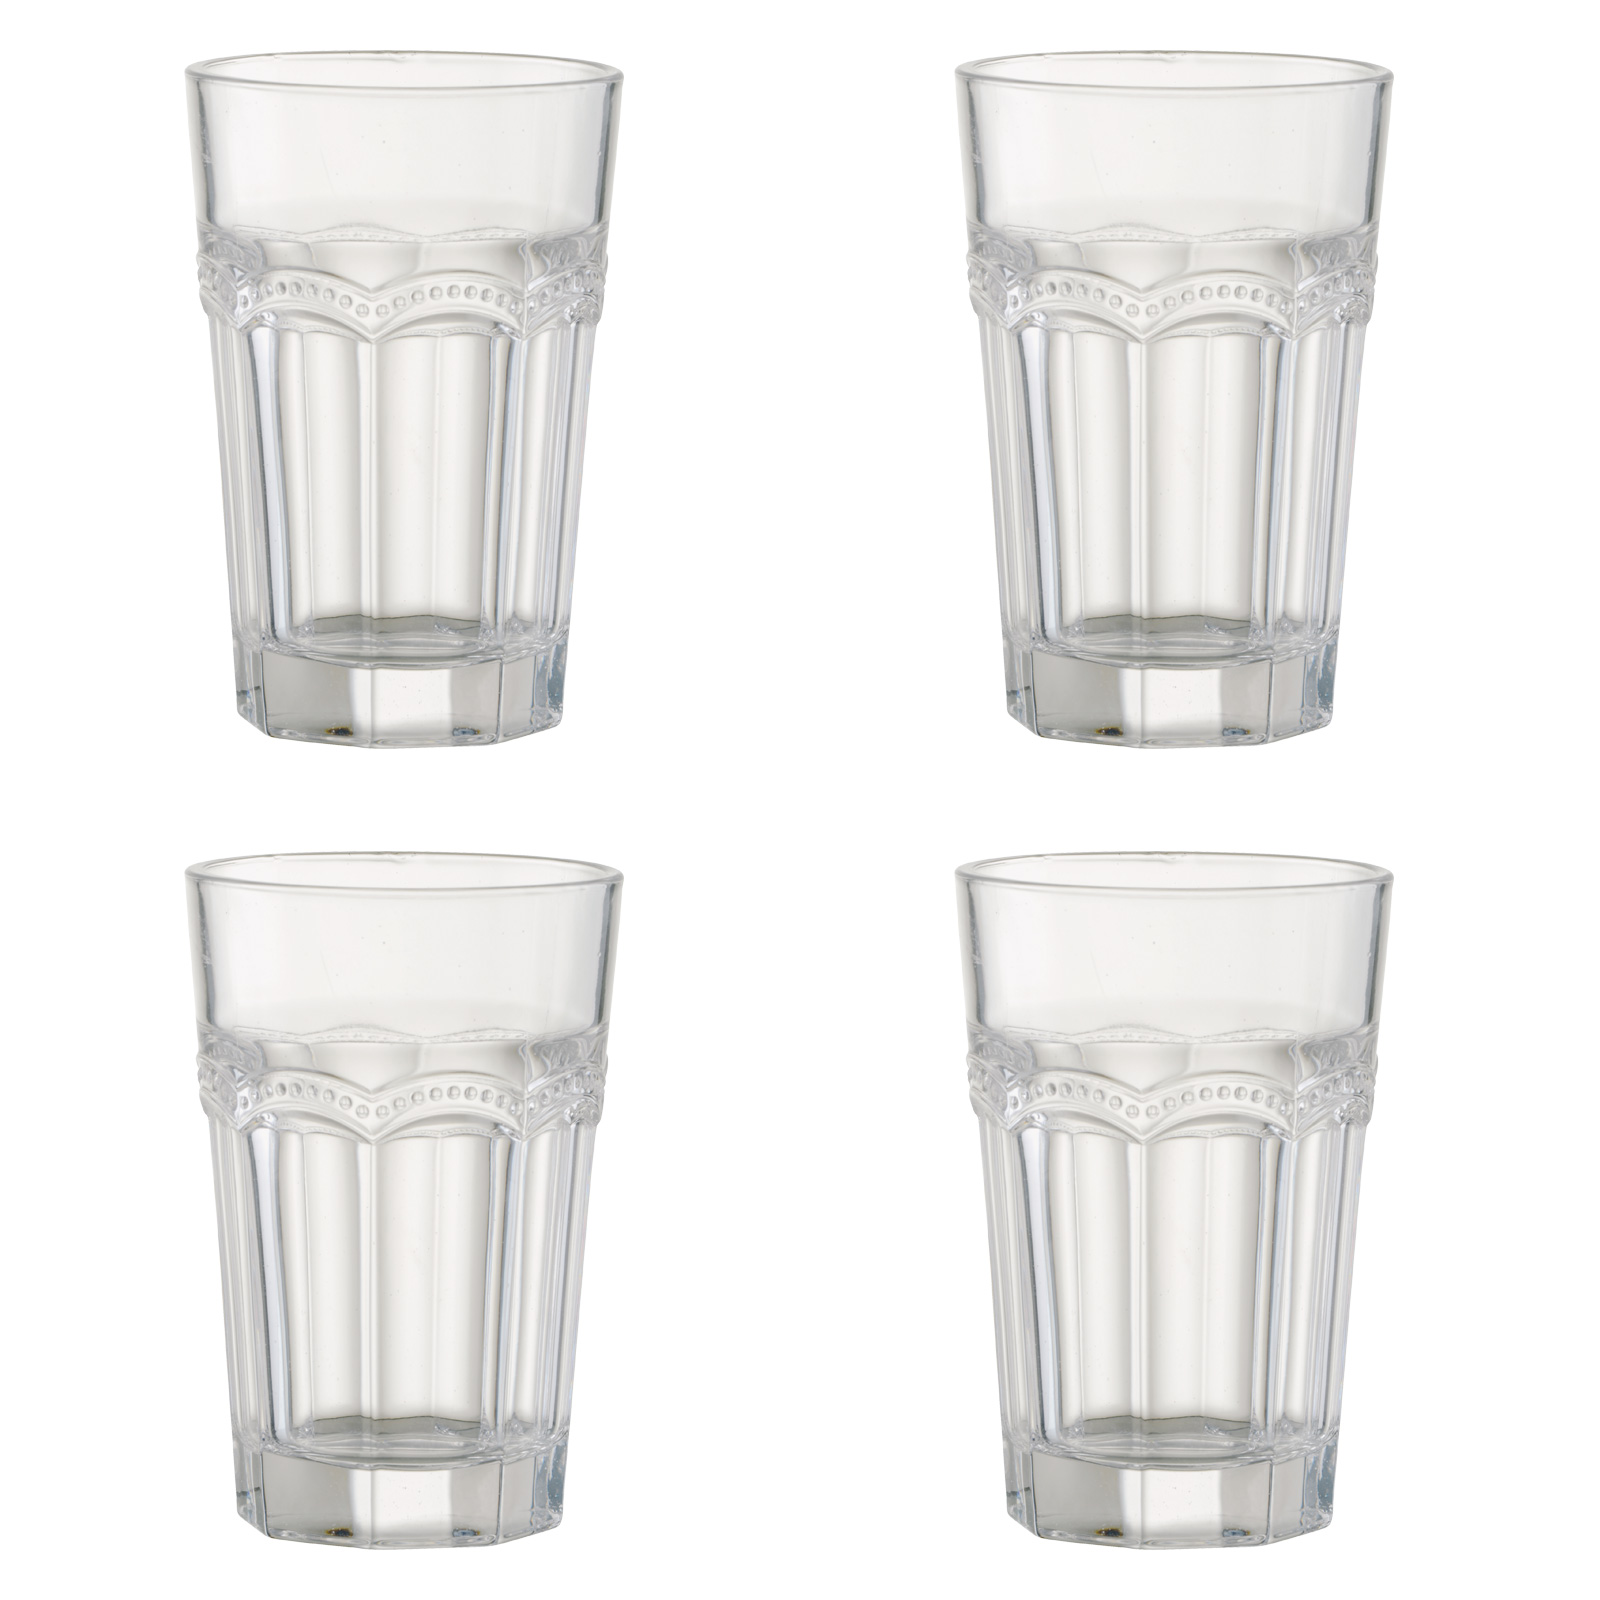 Set of 4 Pearl Ridge Hiball Tumblers by Artland